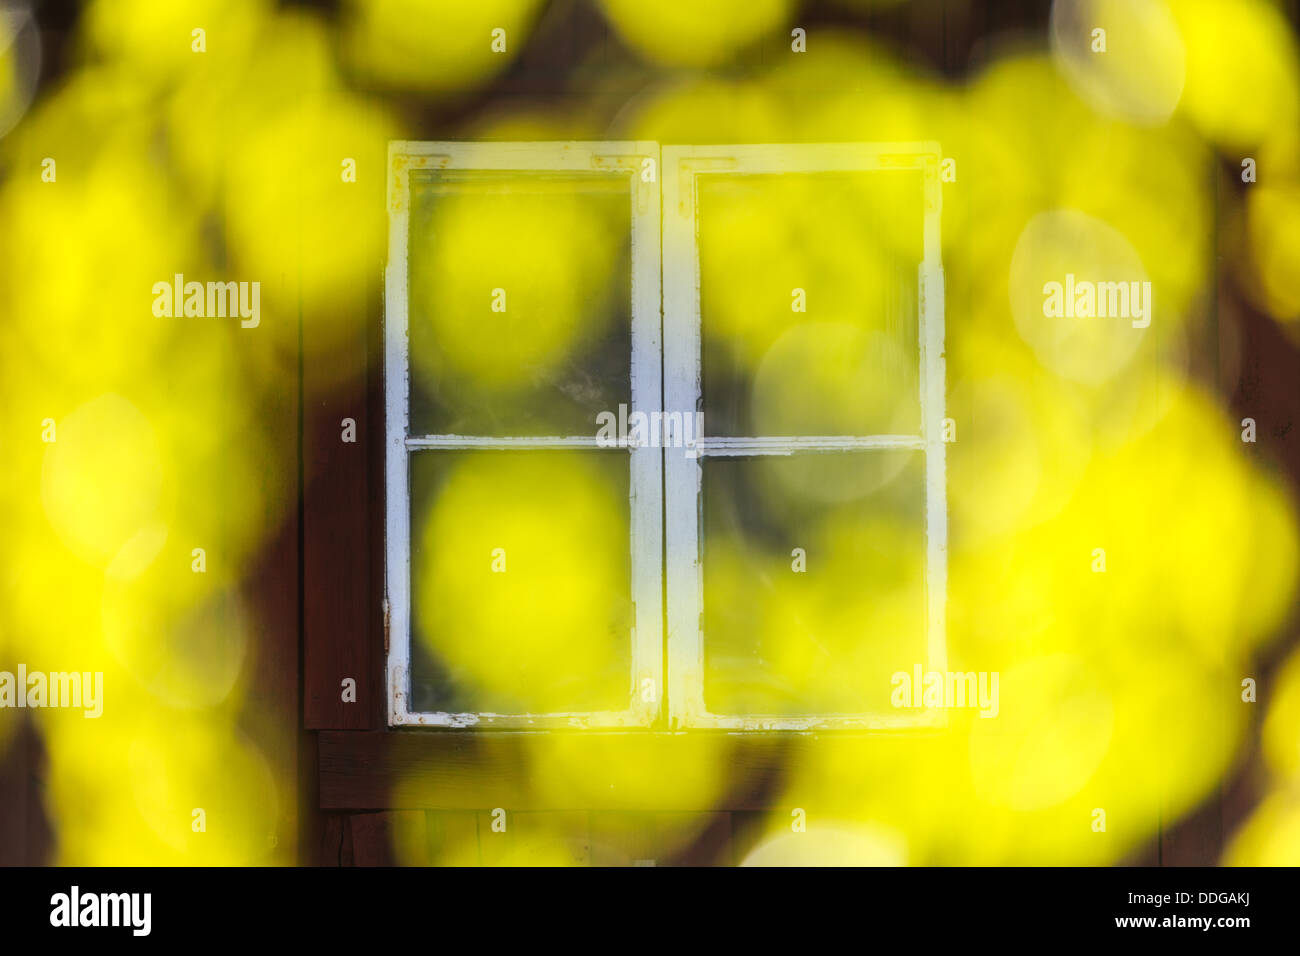 Window with abstract yellow pattern, Munkfors, Värmland, Sweden - Stock Image